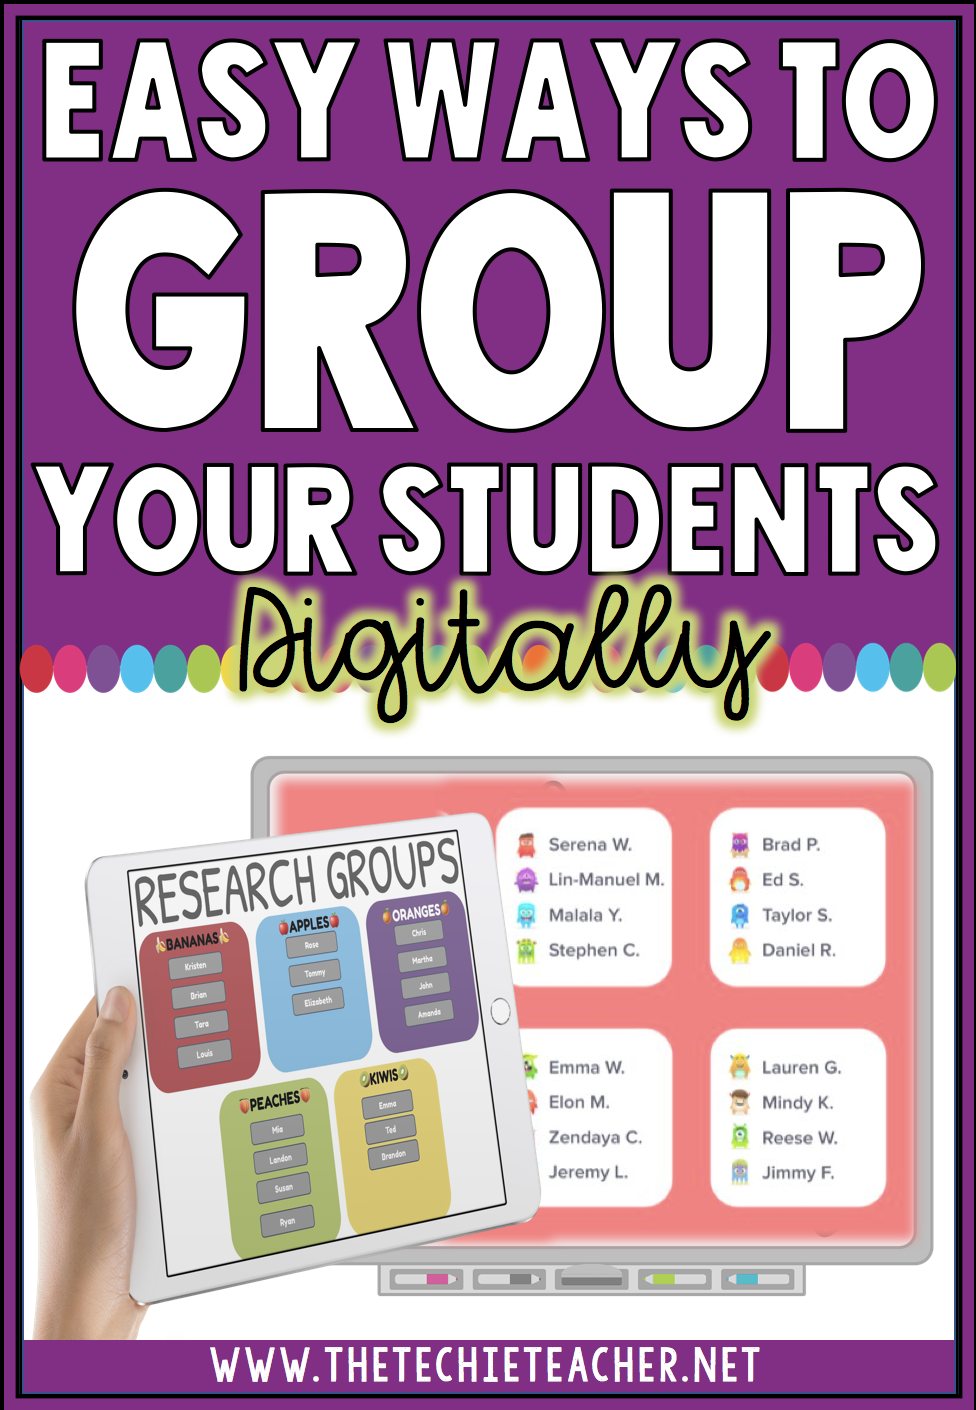 Easy ways to group your students digitally. Many options are offered in this post that can be used on Chromebooks, laptops, computers and iPads. There are also an option for Google Drive!